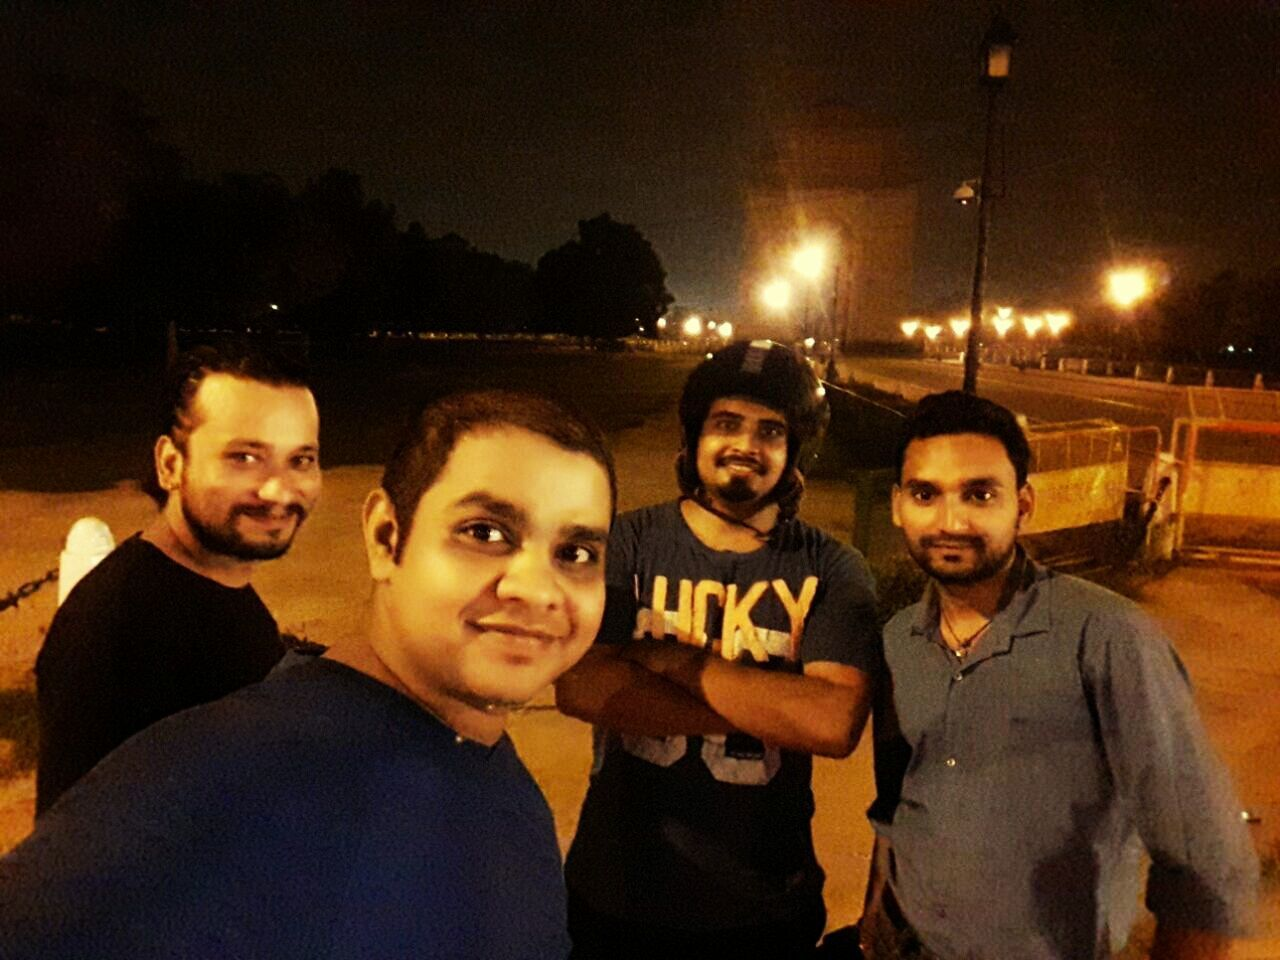 Nightphotography Friendship Smiling Enjoyment Bikers Brotherhood Mc Young Adult Friends Naughty But Nice India Gate In Delhi India Night Roamer